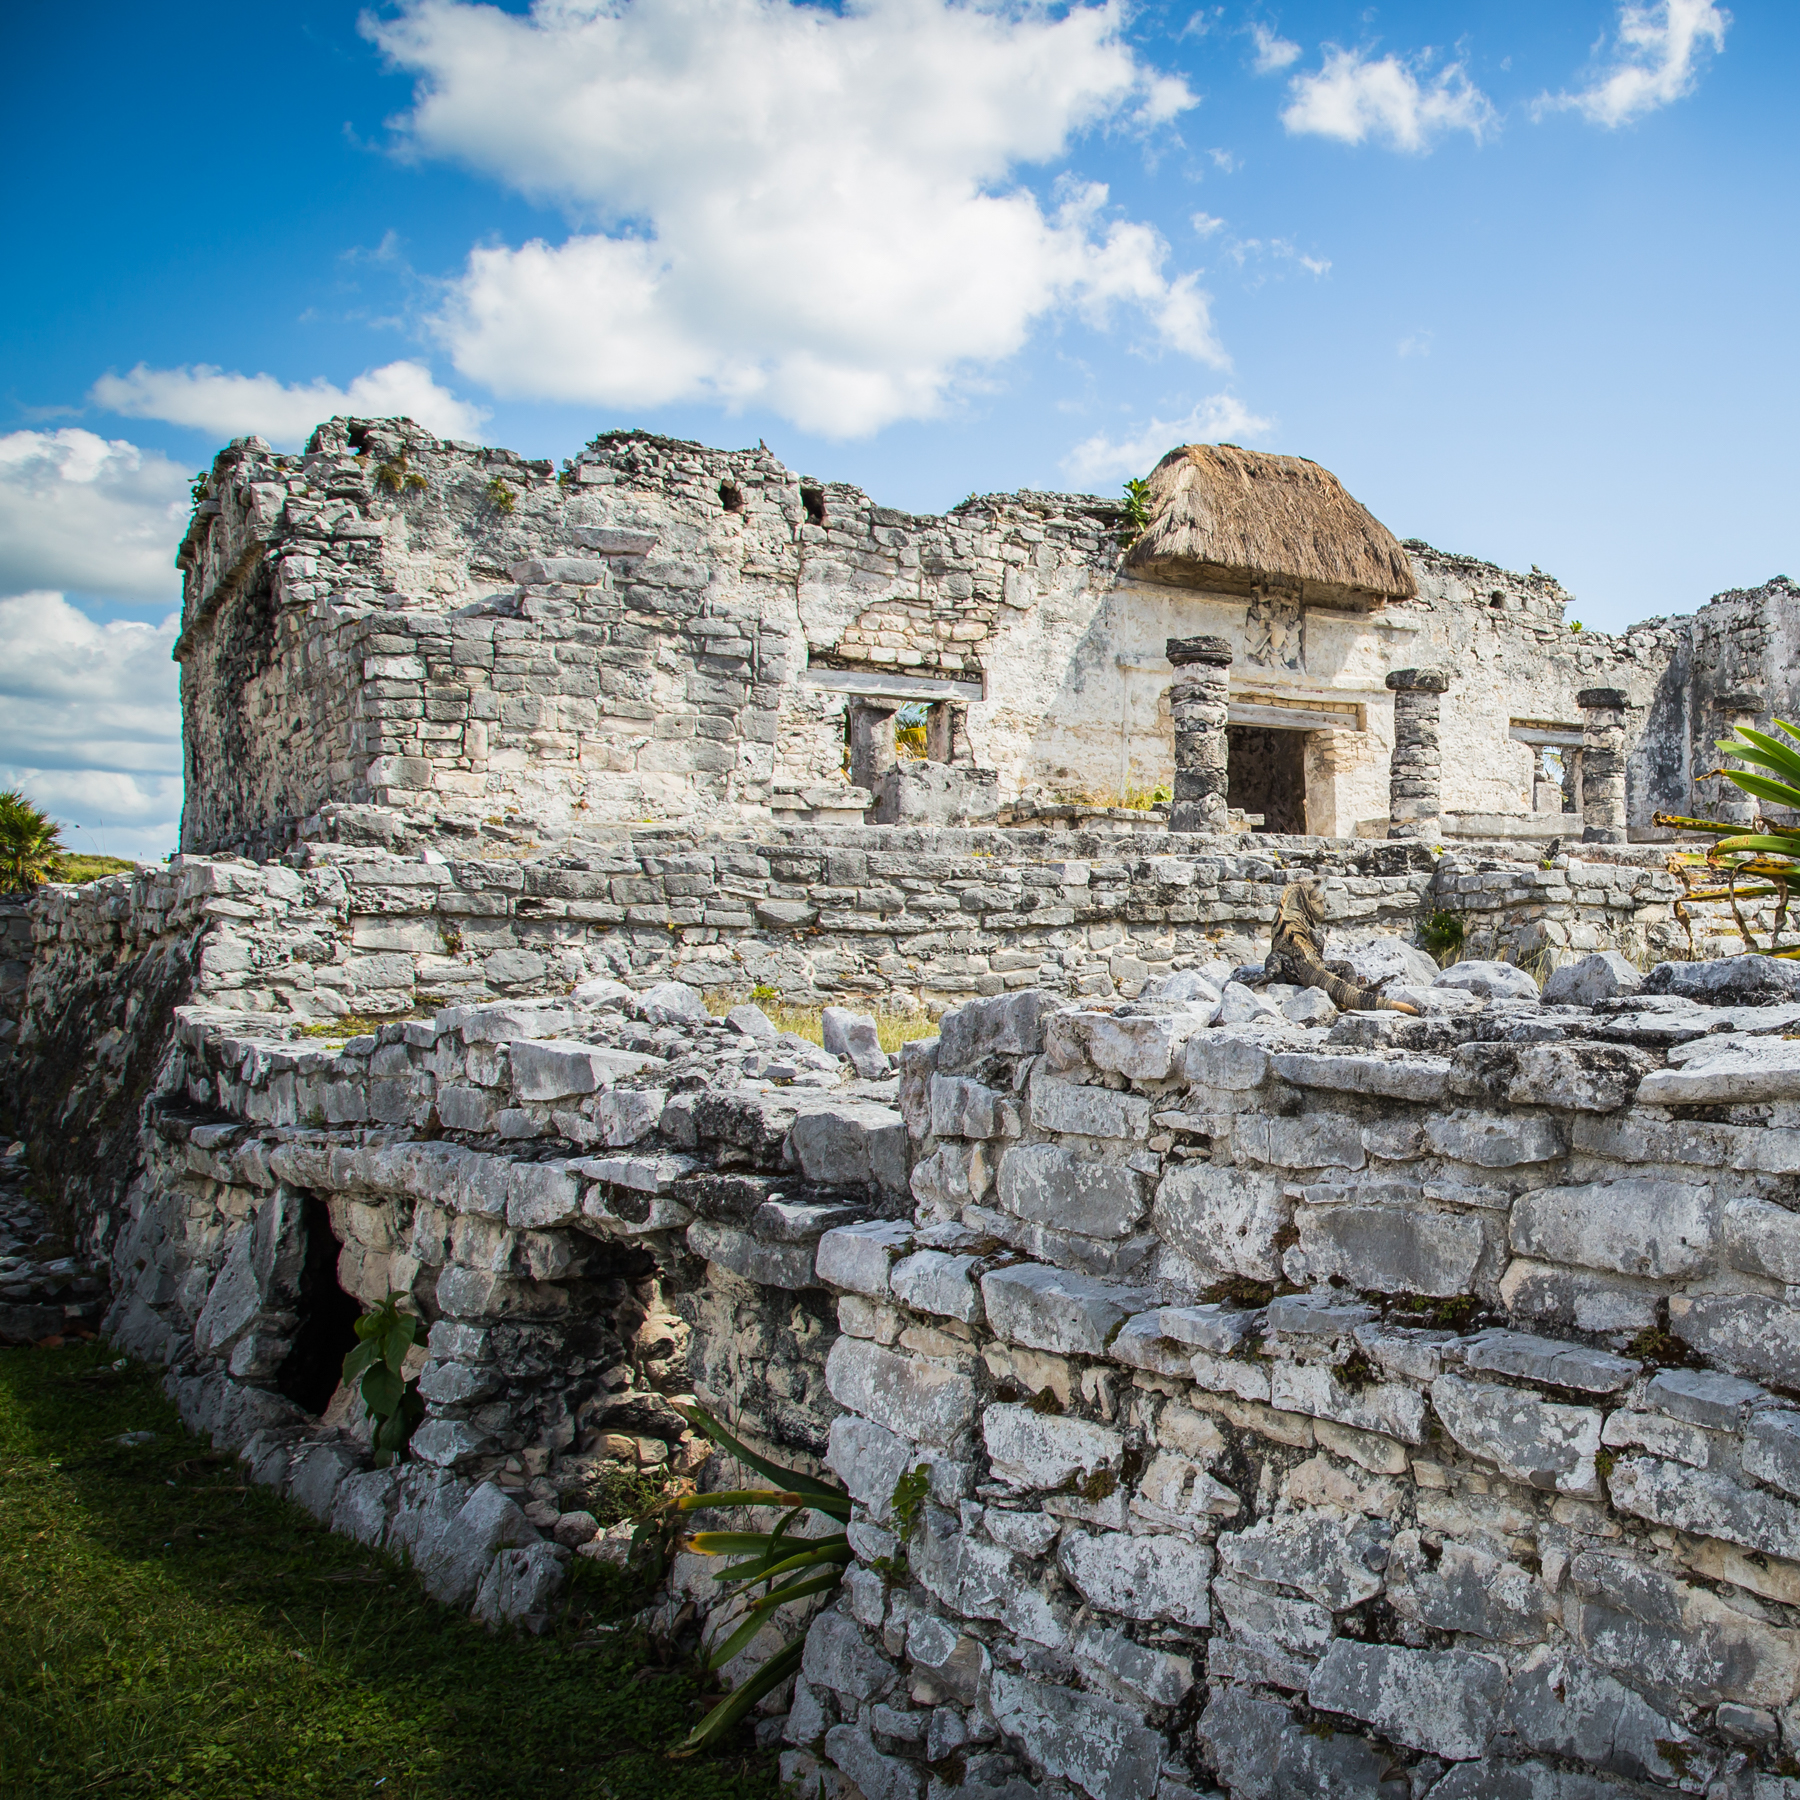 Ruins of Tulum, Mexico overlooking the Caribbean Sea. Mayan Temple, Tulum, Riviera Maya, Yucatan, Mexico